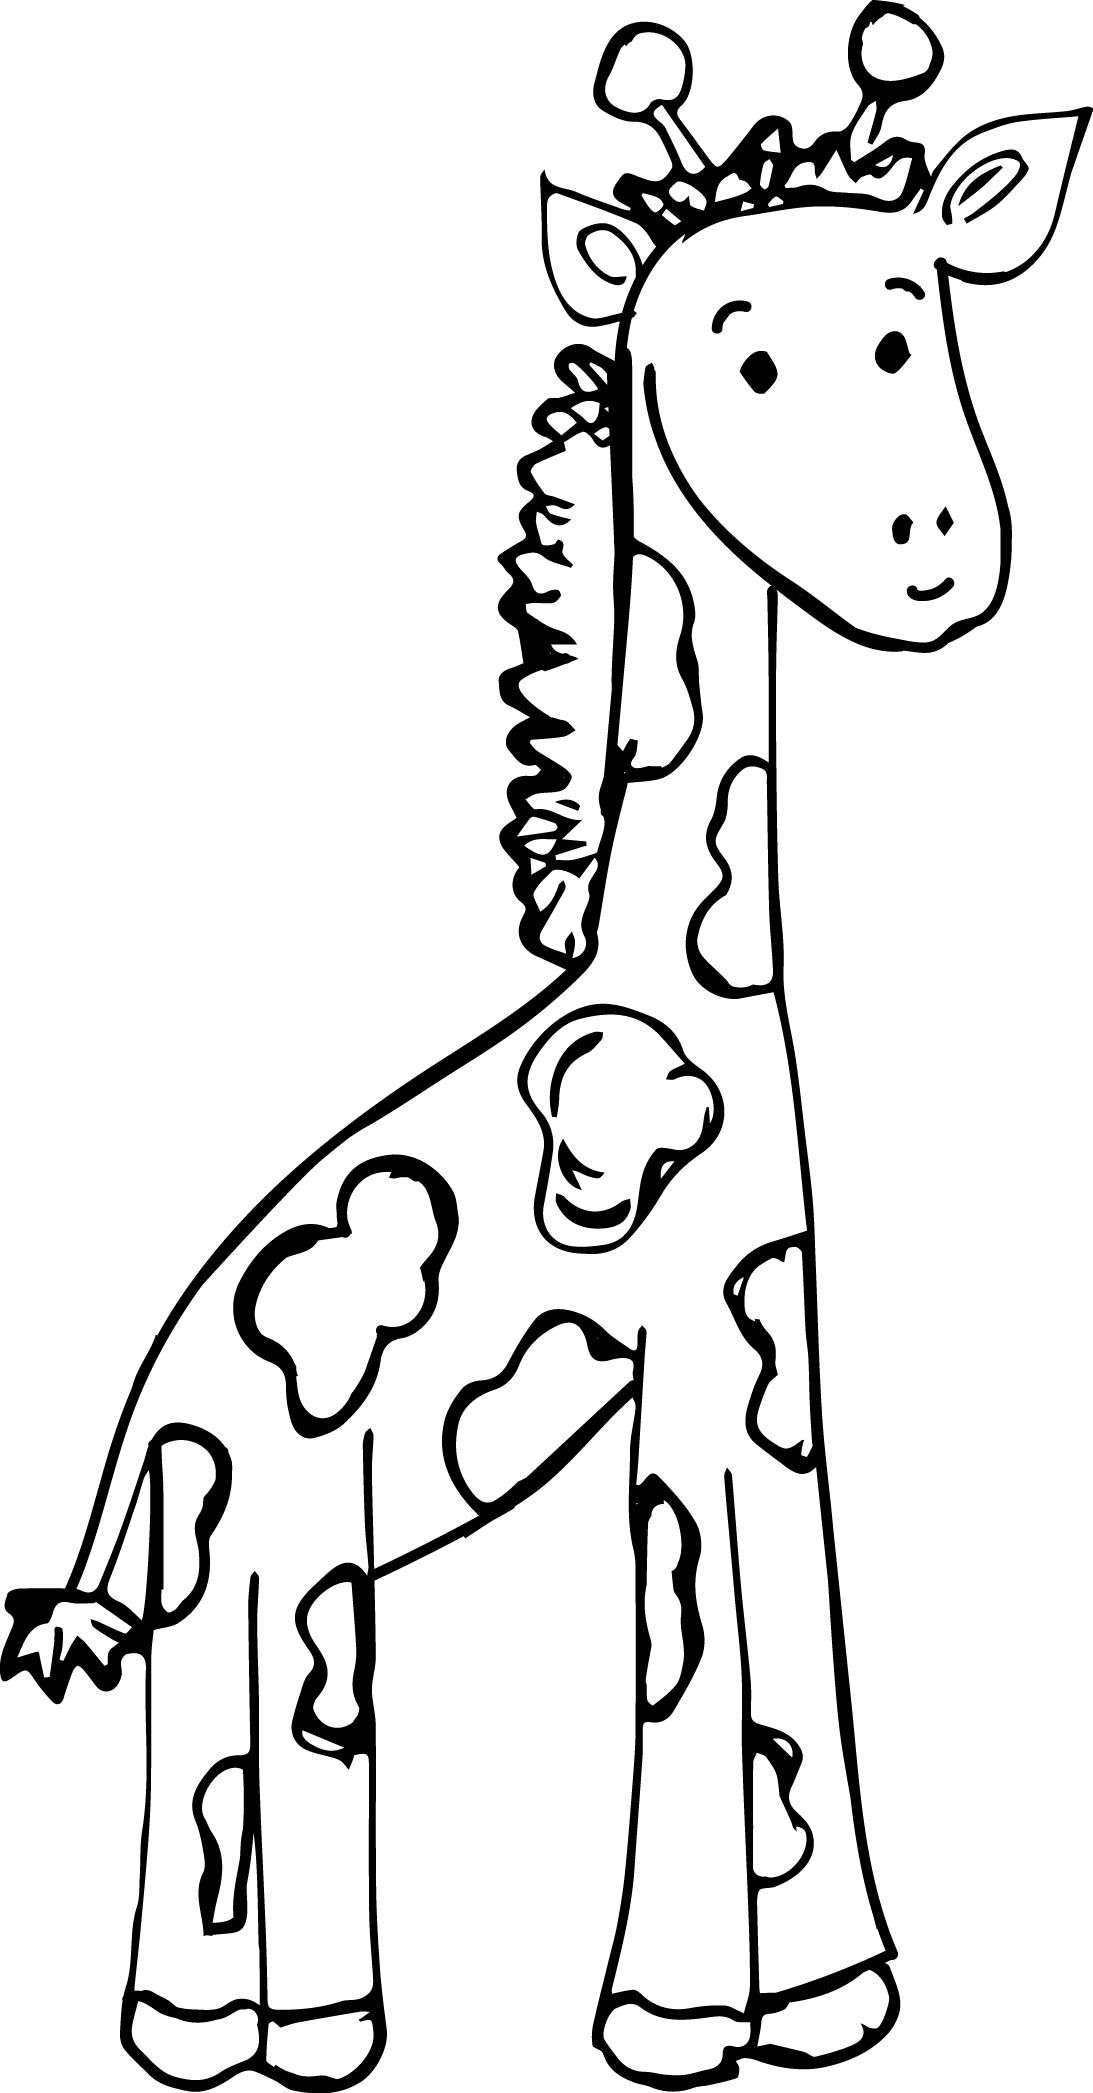 39++ Cartoon giraffe coloring pages ideas